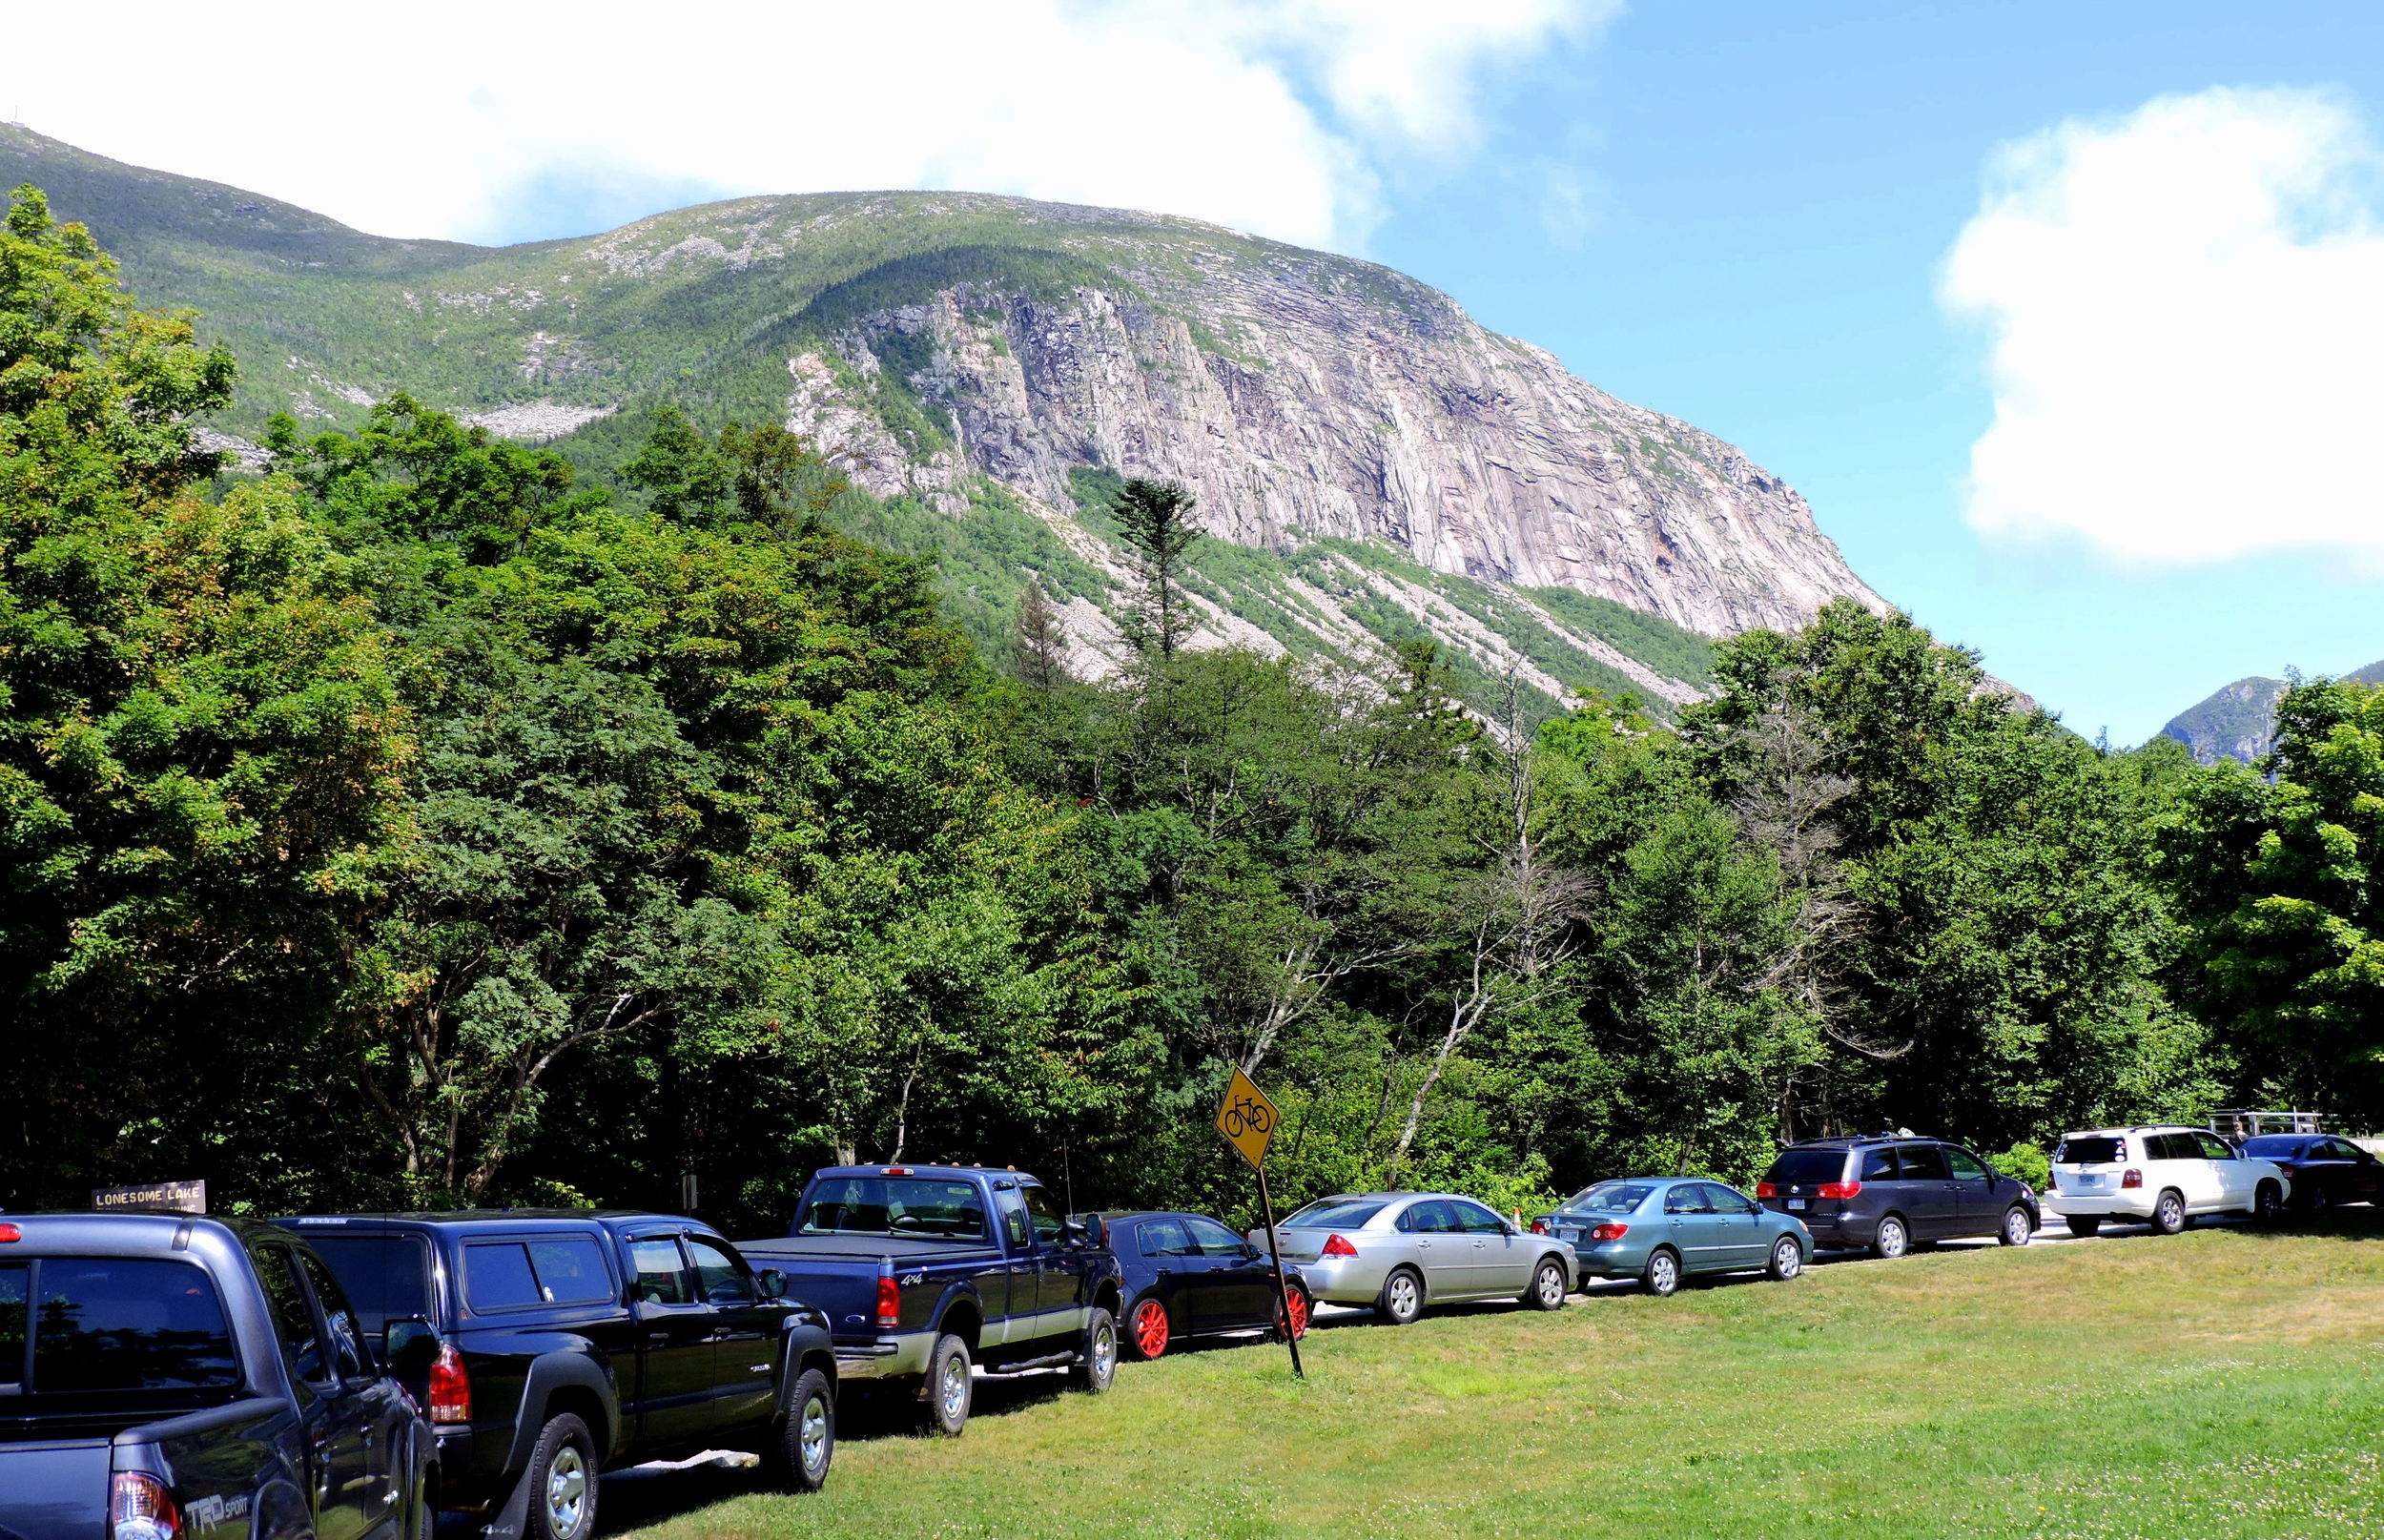 Cars parked along the entryway of the parking area for Lonesome Lake demonstrate the popularity of the area.